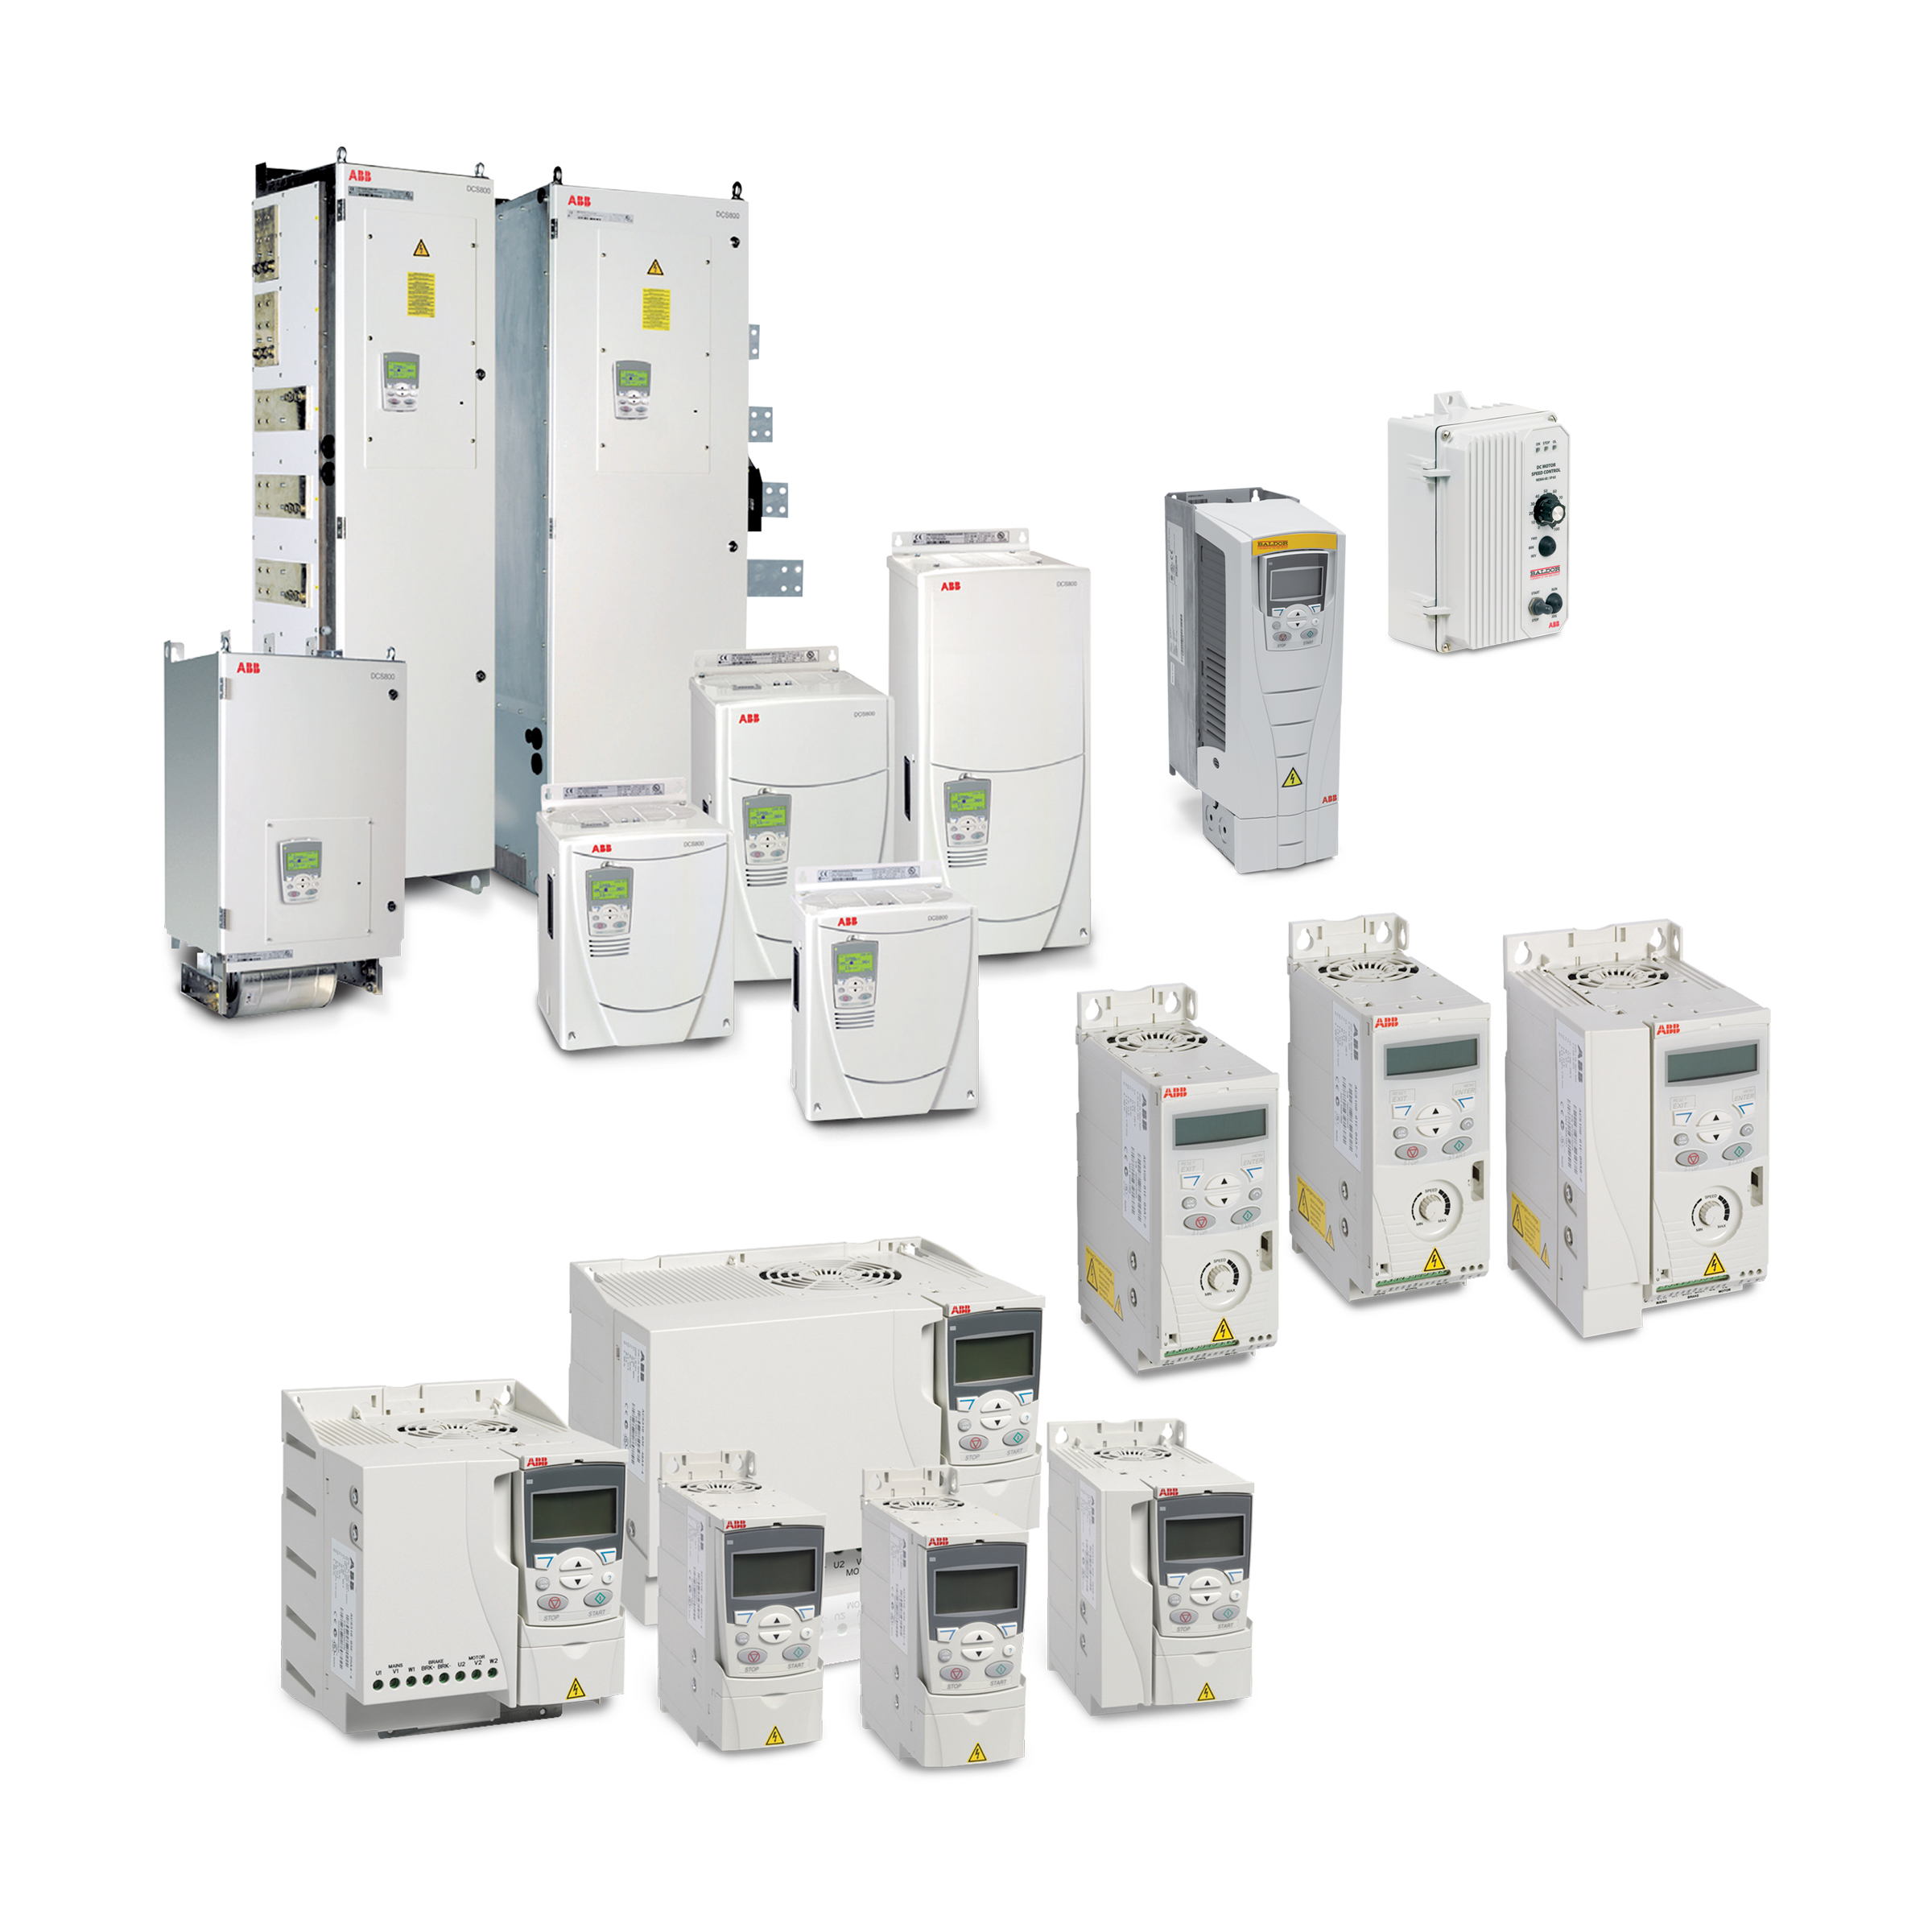 baldor reliance drive family all.ashx?bc=white&as=1&w=1024 drives baldor com baldor reliance industrial motor wiring diagram at crackthecode.co